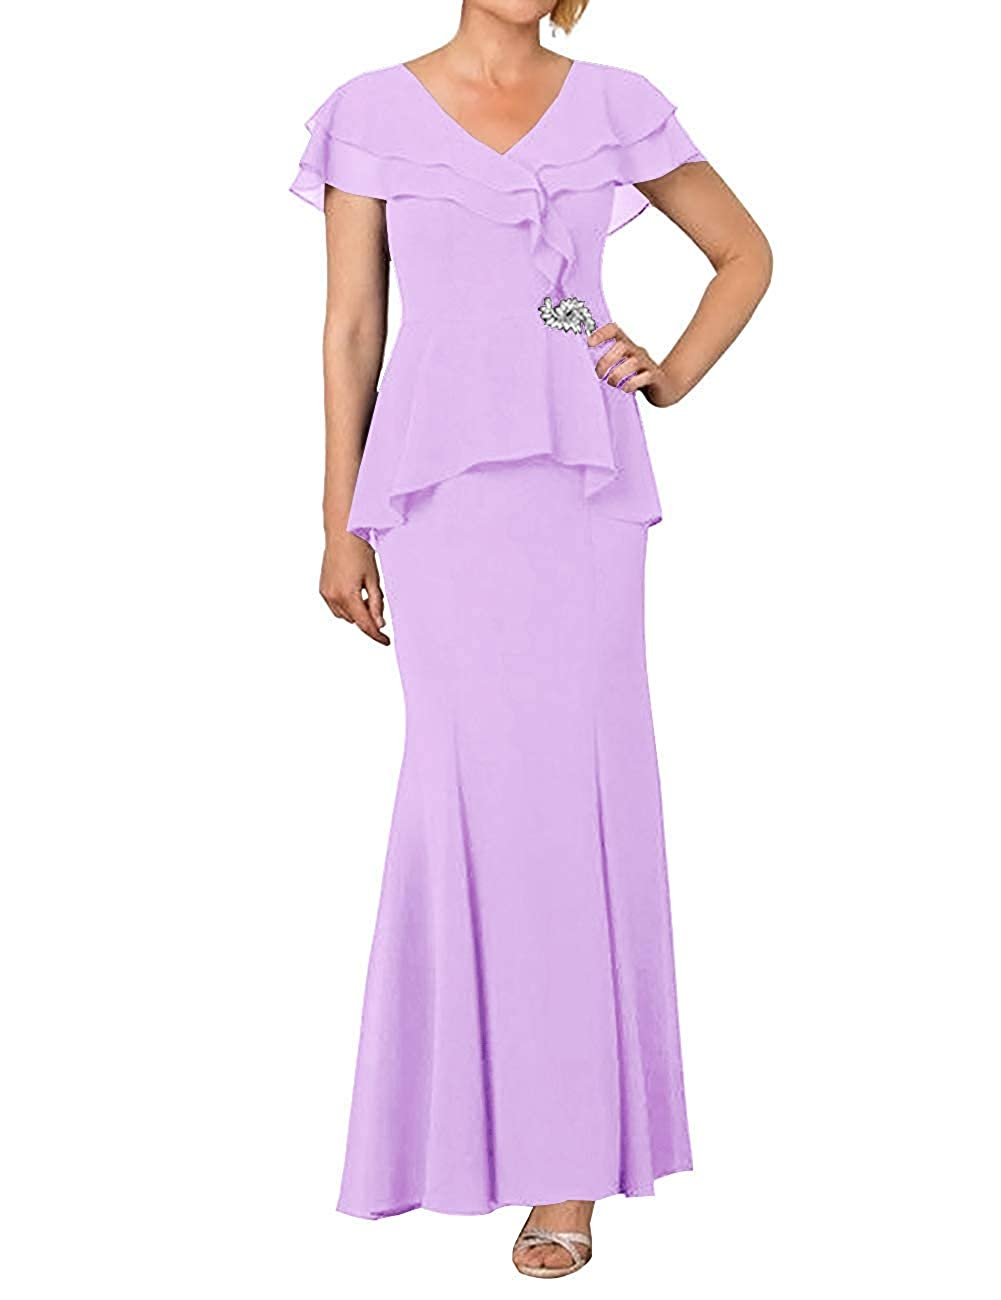 Lavender ZLQQ Womens Mother of The Bride Dress 2019 Cap Sleeve V Neck Formal Evening Gown